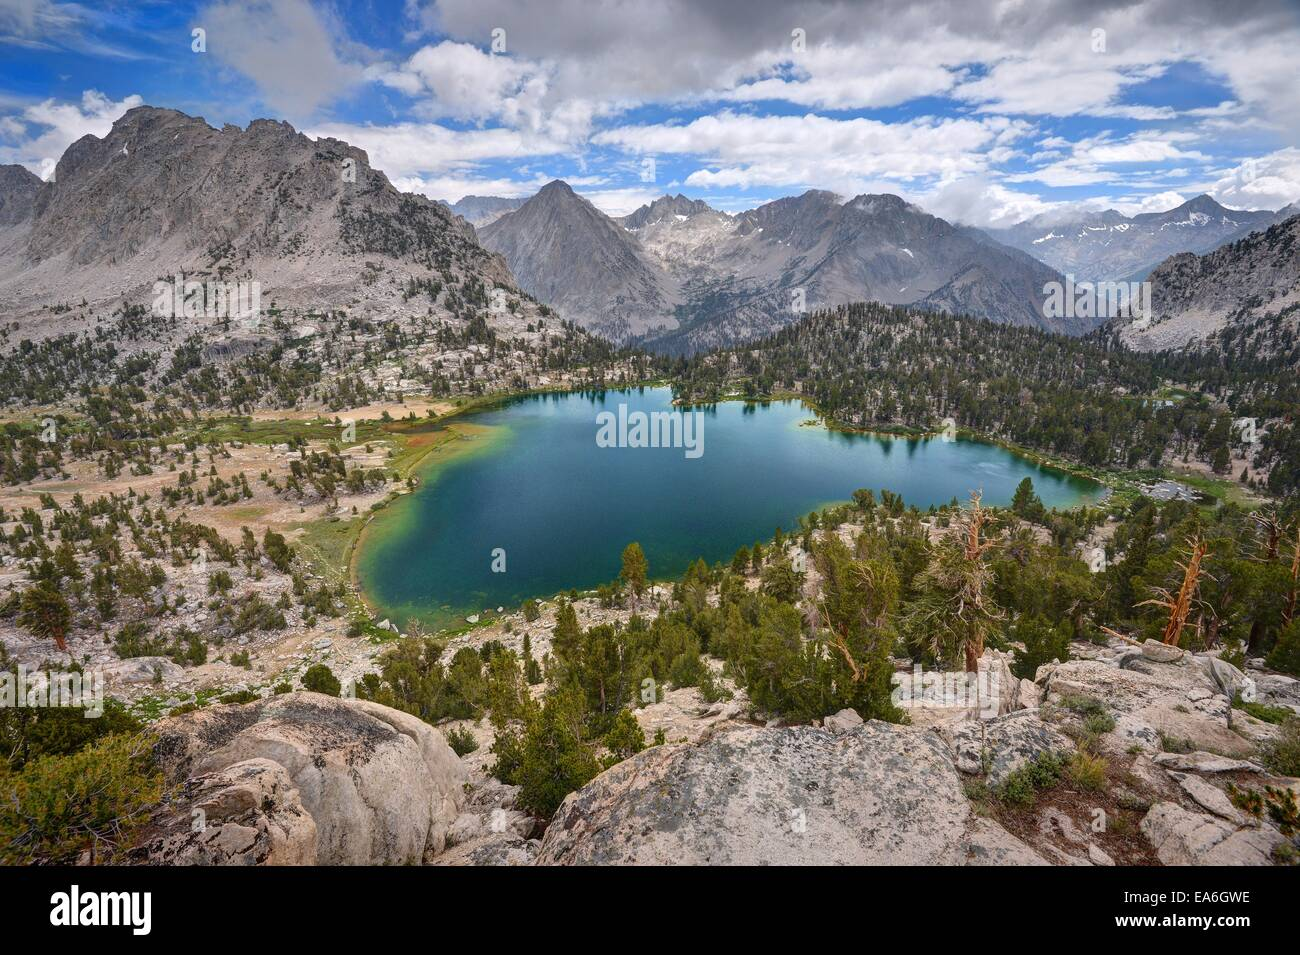 USA, California, Ansel Adams Wilderness Area, Inyo National Forest, spektakuläre Bullfrog Lake Stockbild